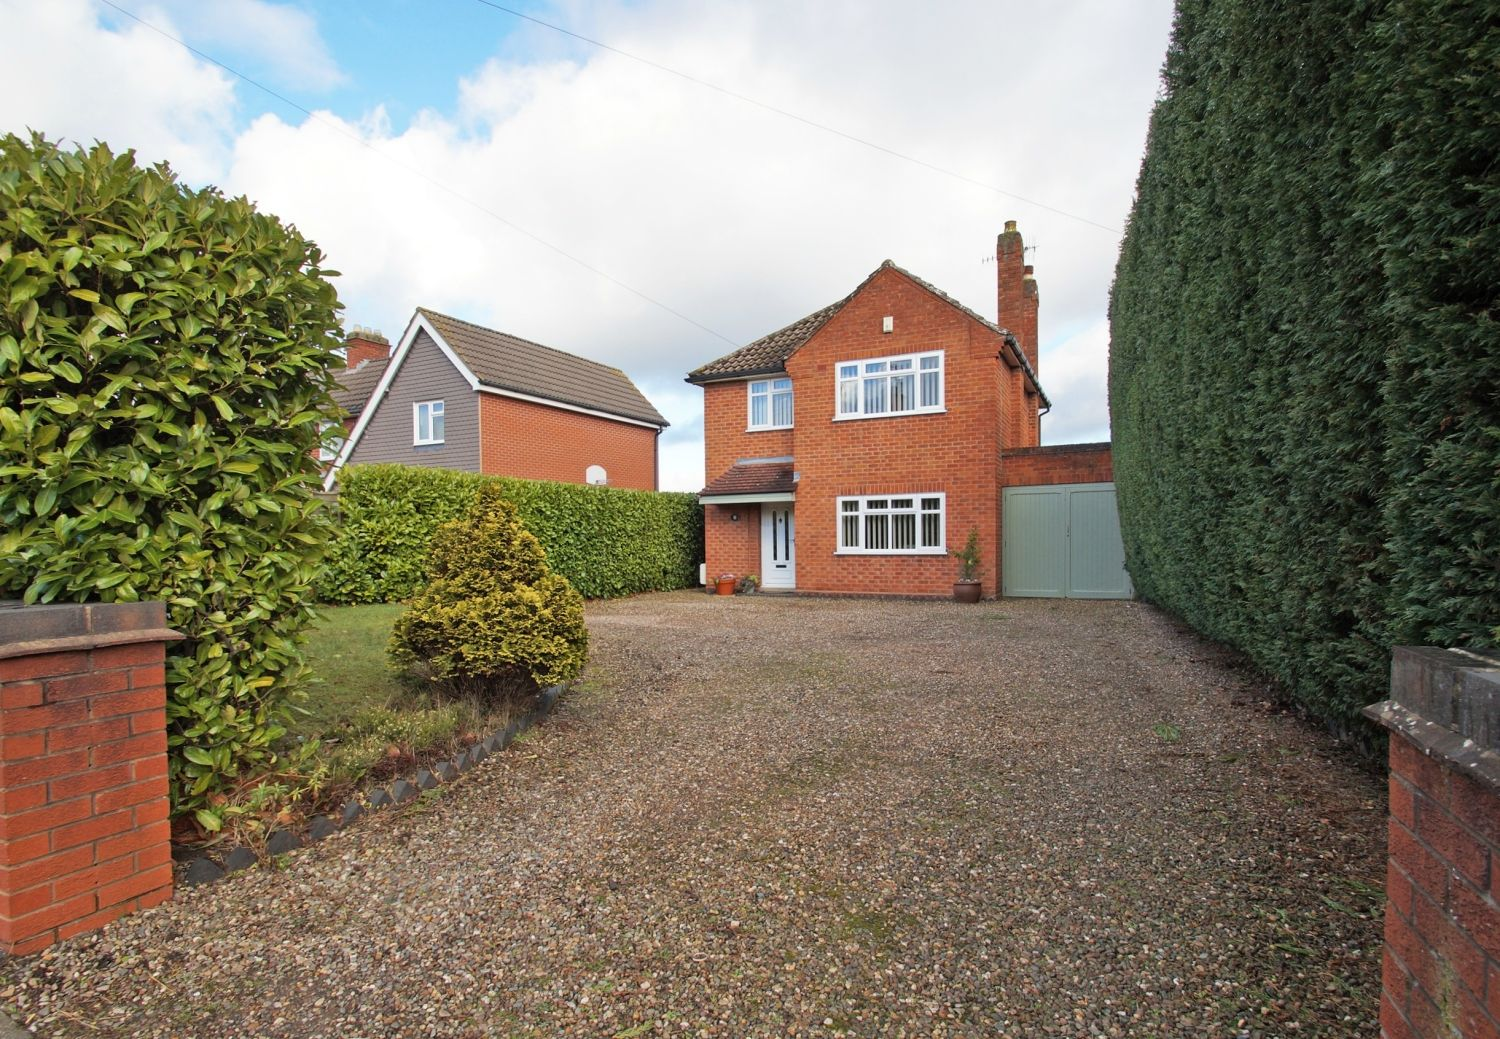 3 bed detached for sale in Fox Lane, Bromsgrove 1